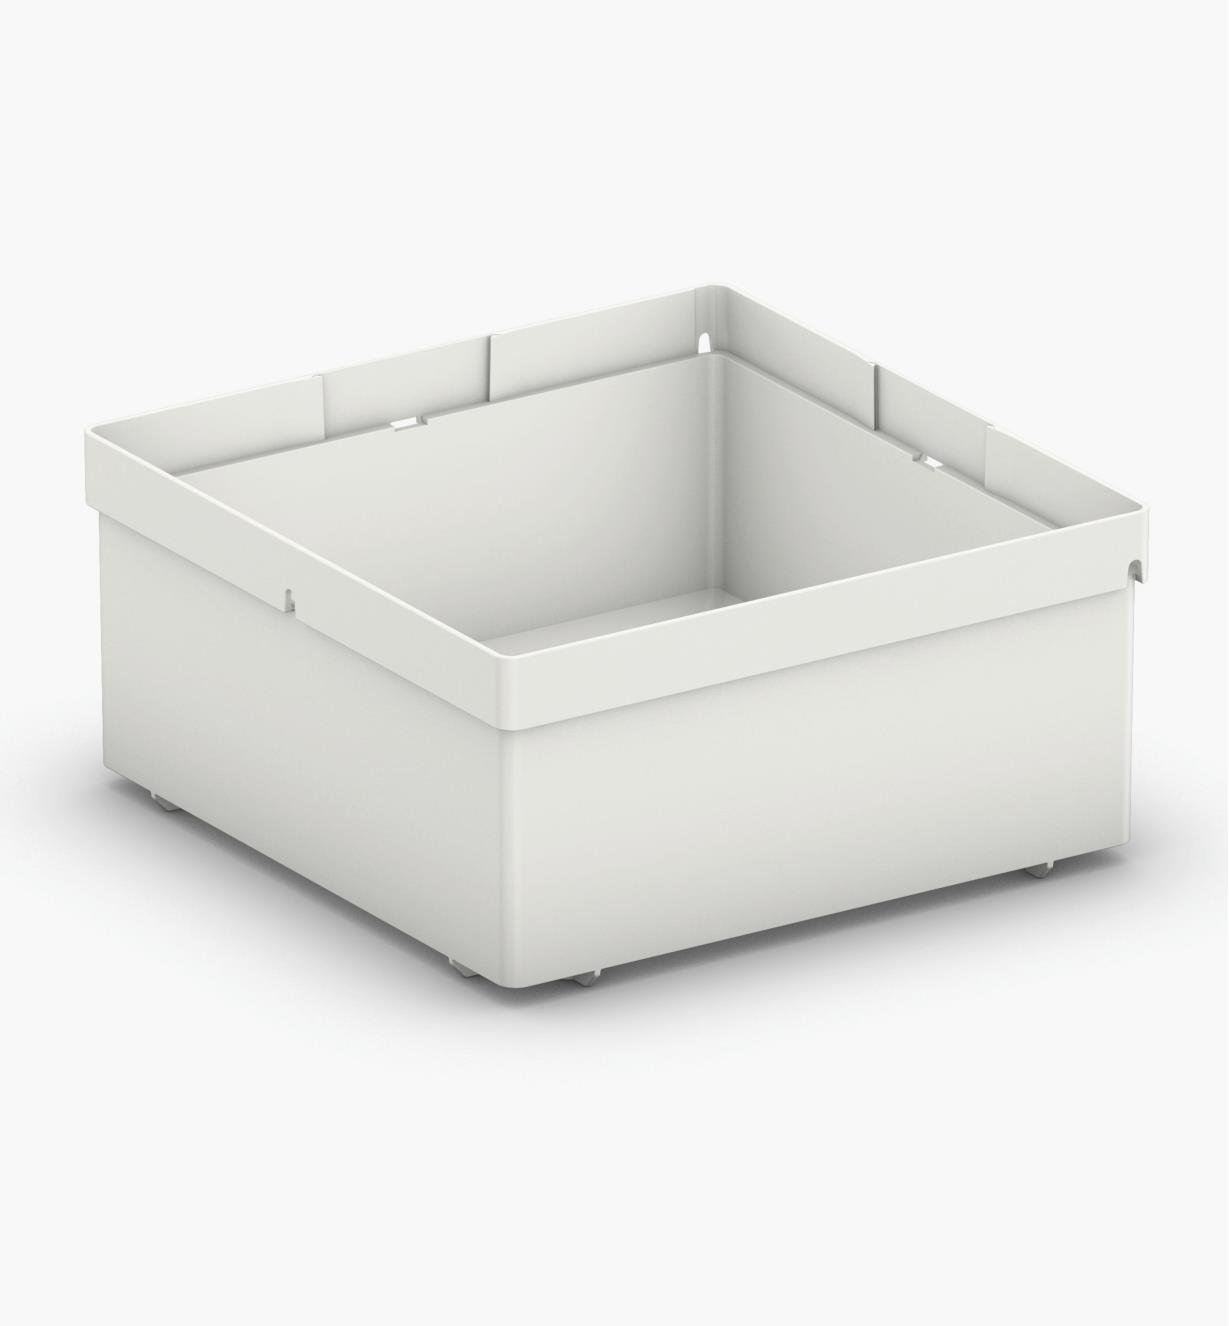 150mm × 150mm × 68mm Bins, pkg. of 6